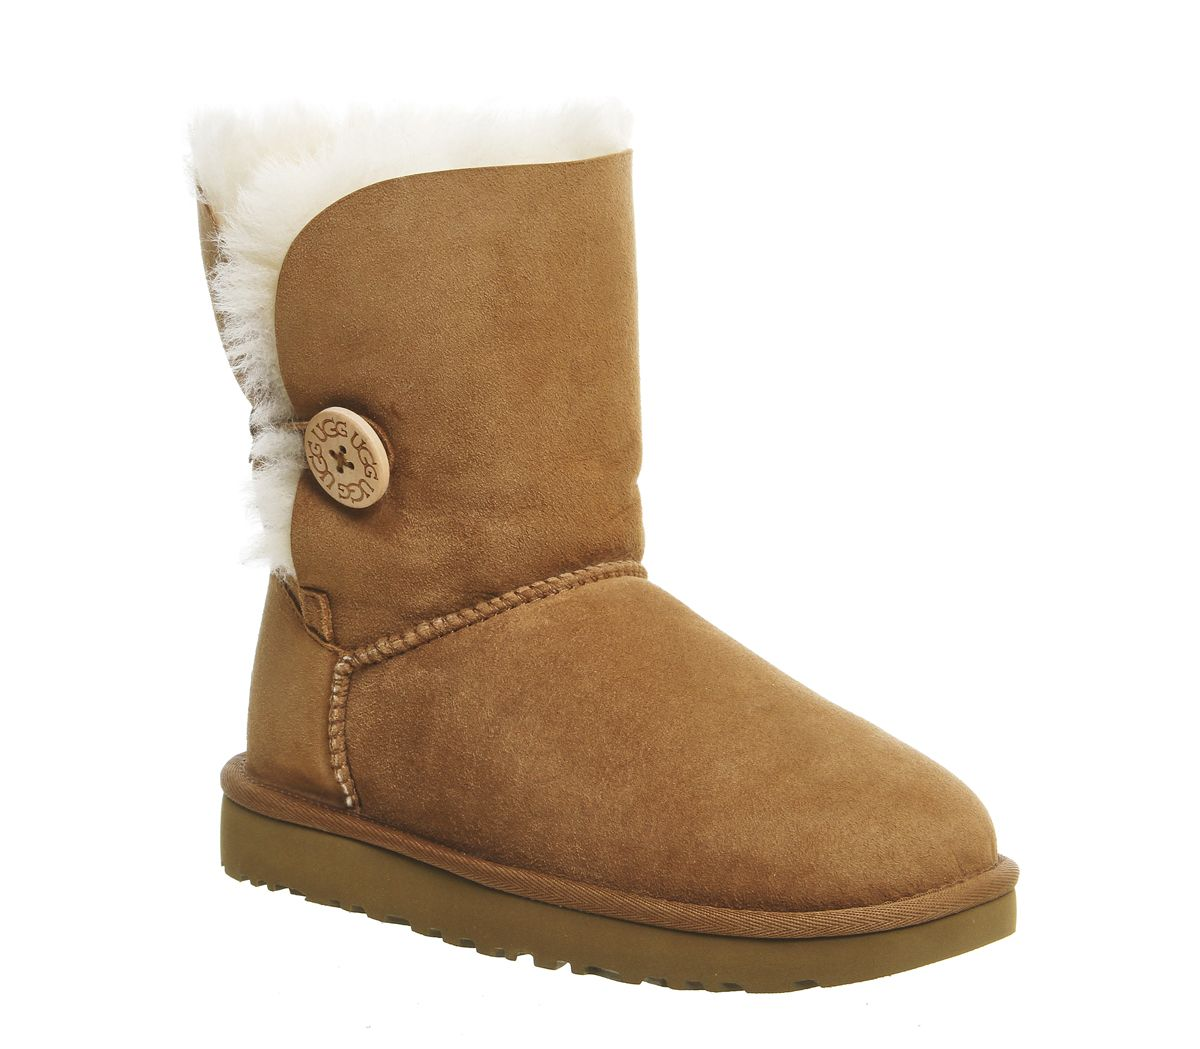 d063430e2 UGG Bailey Button II Boots Chestnut Suede - Ankle Boots